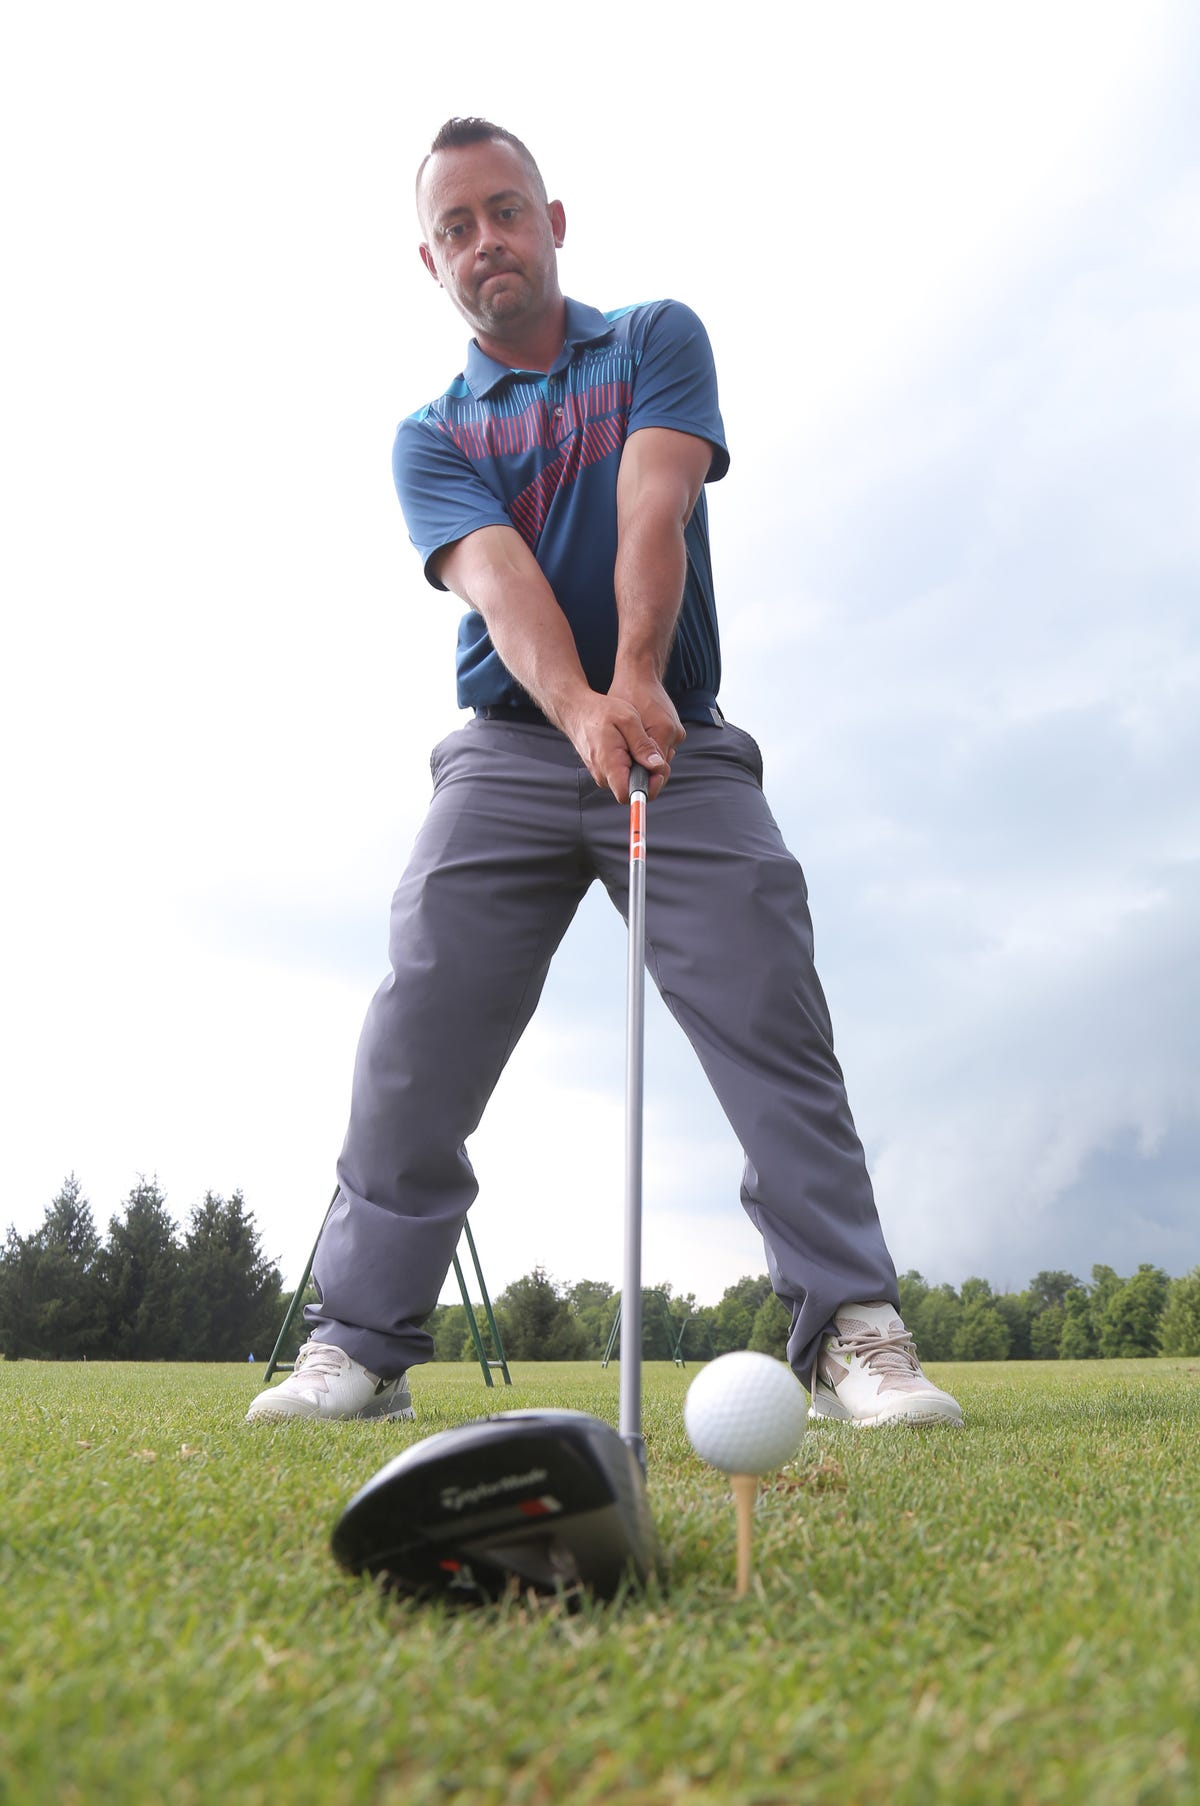 Want to hit your driver consistently? Here's how